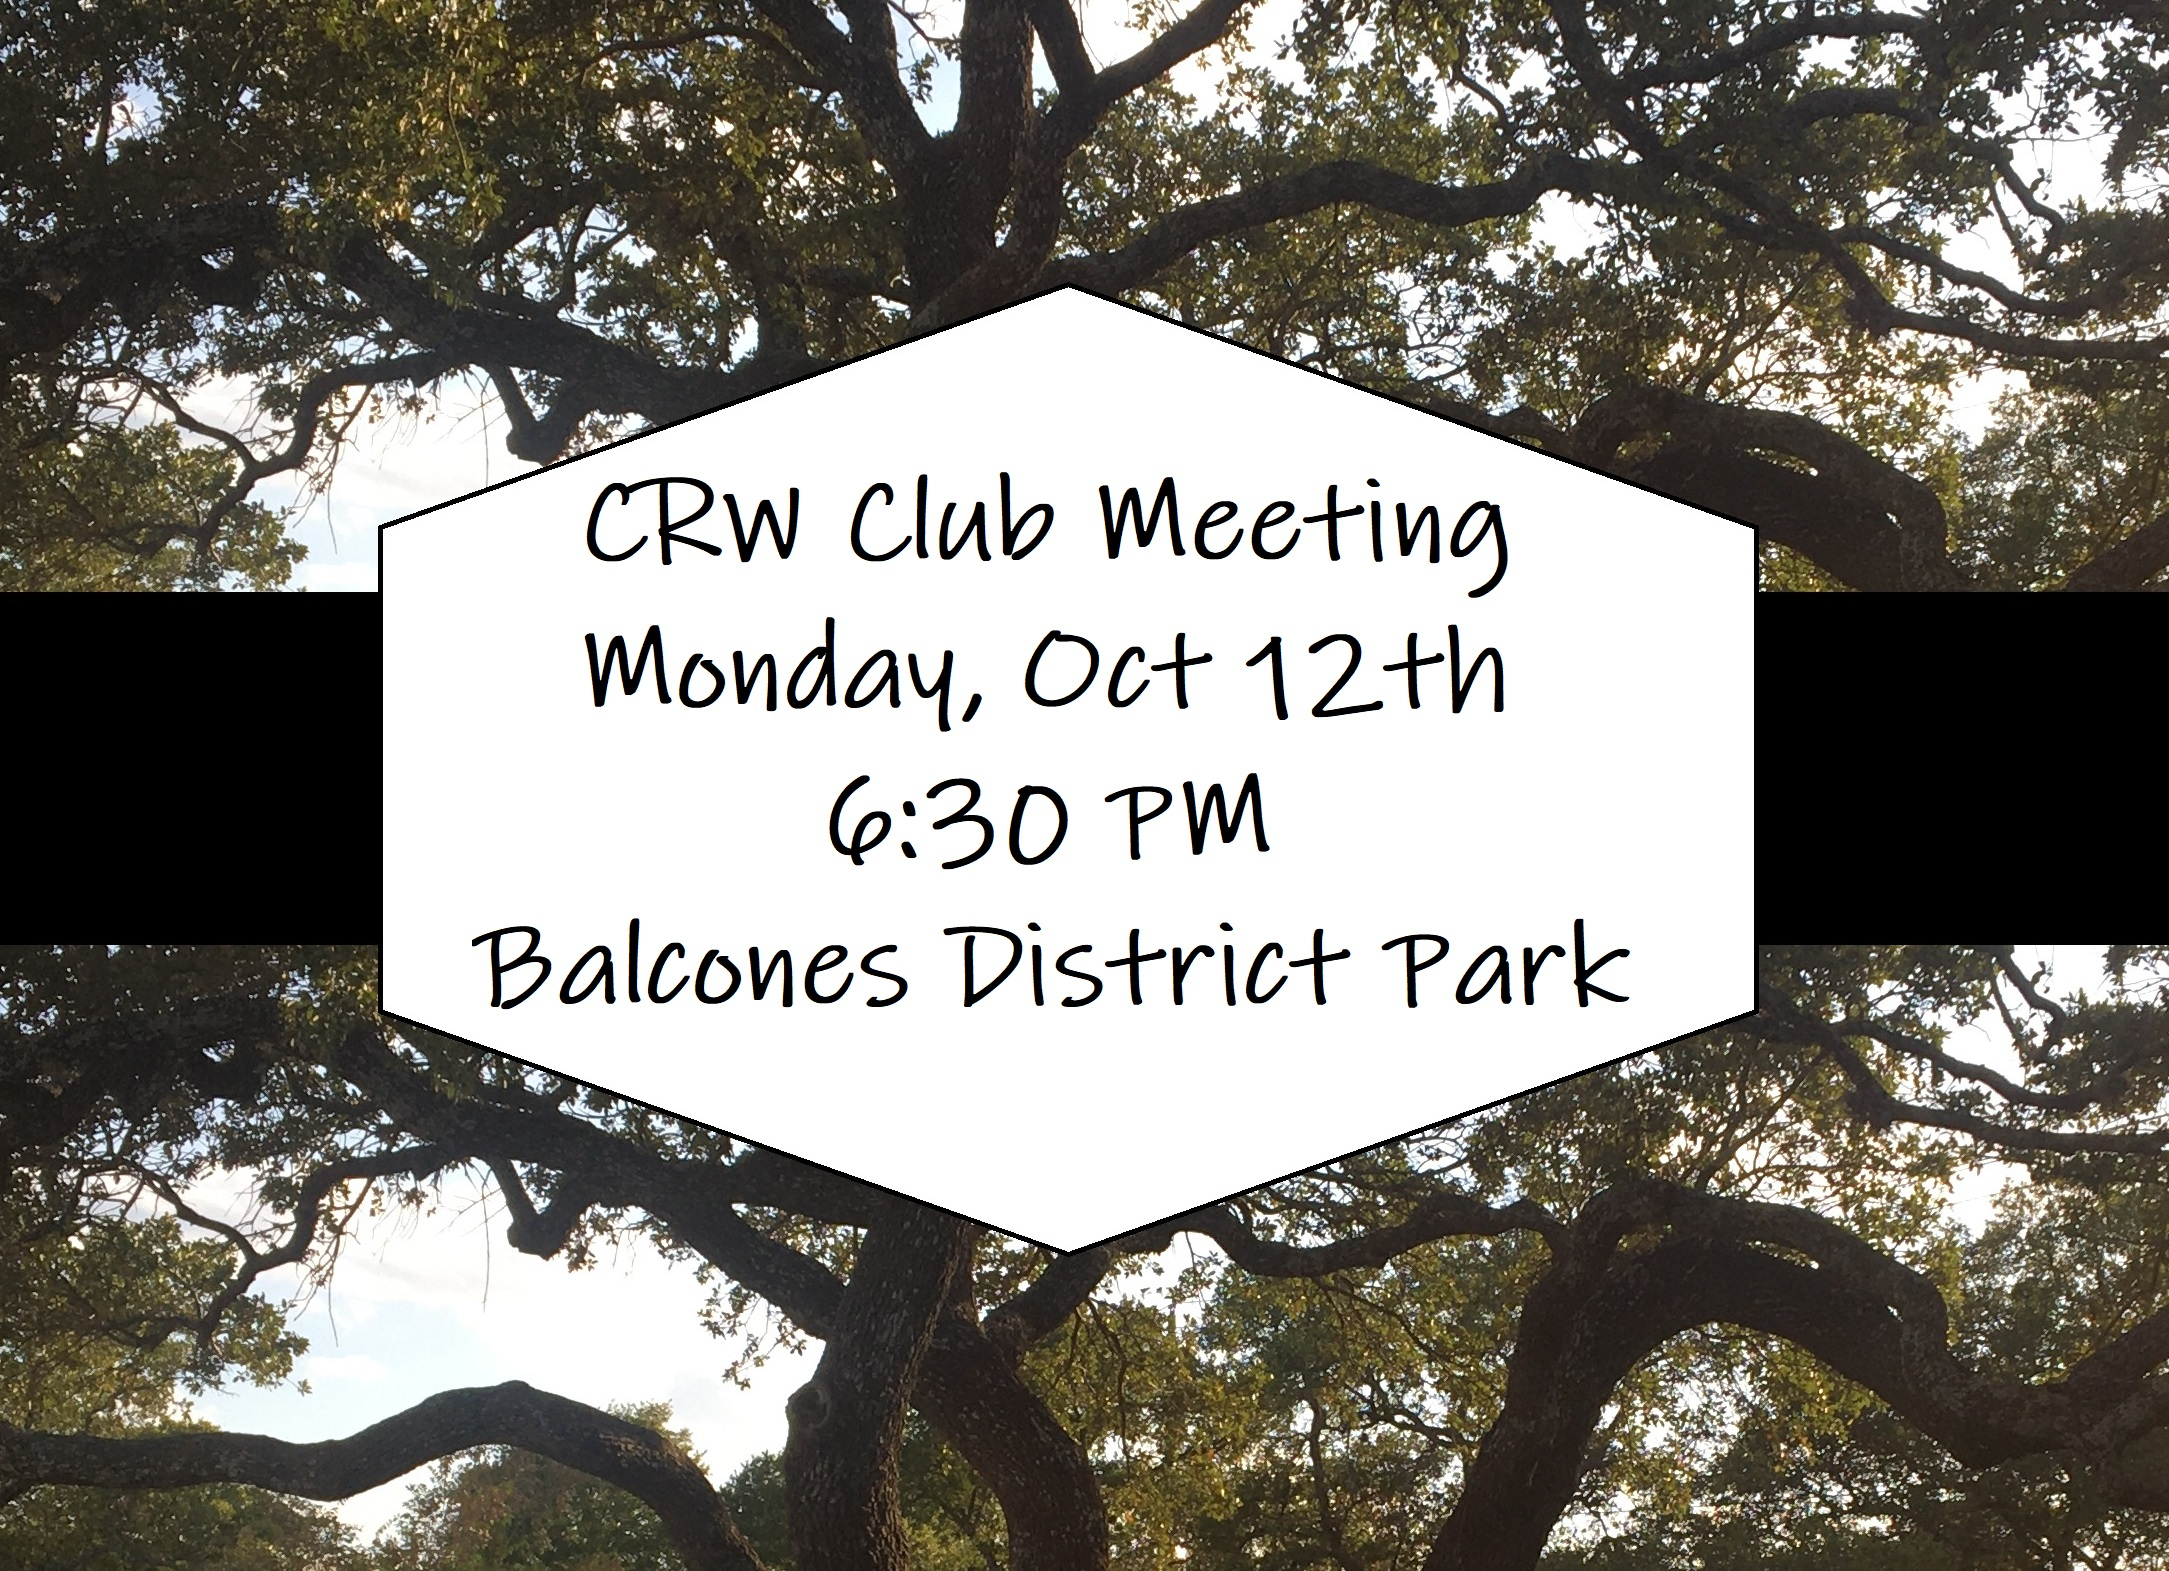 Next CRW Club Meeting is Oct 12th